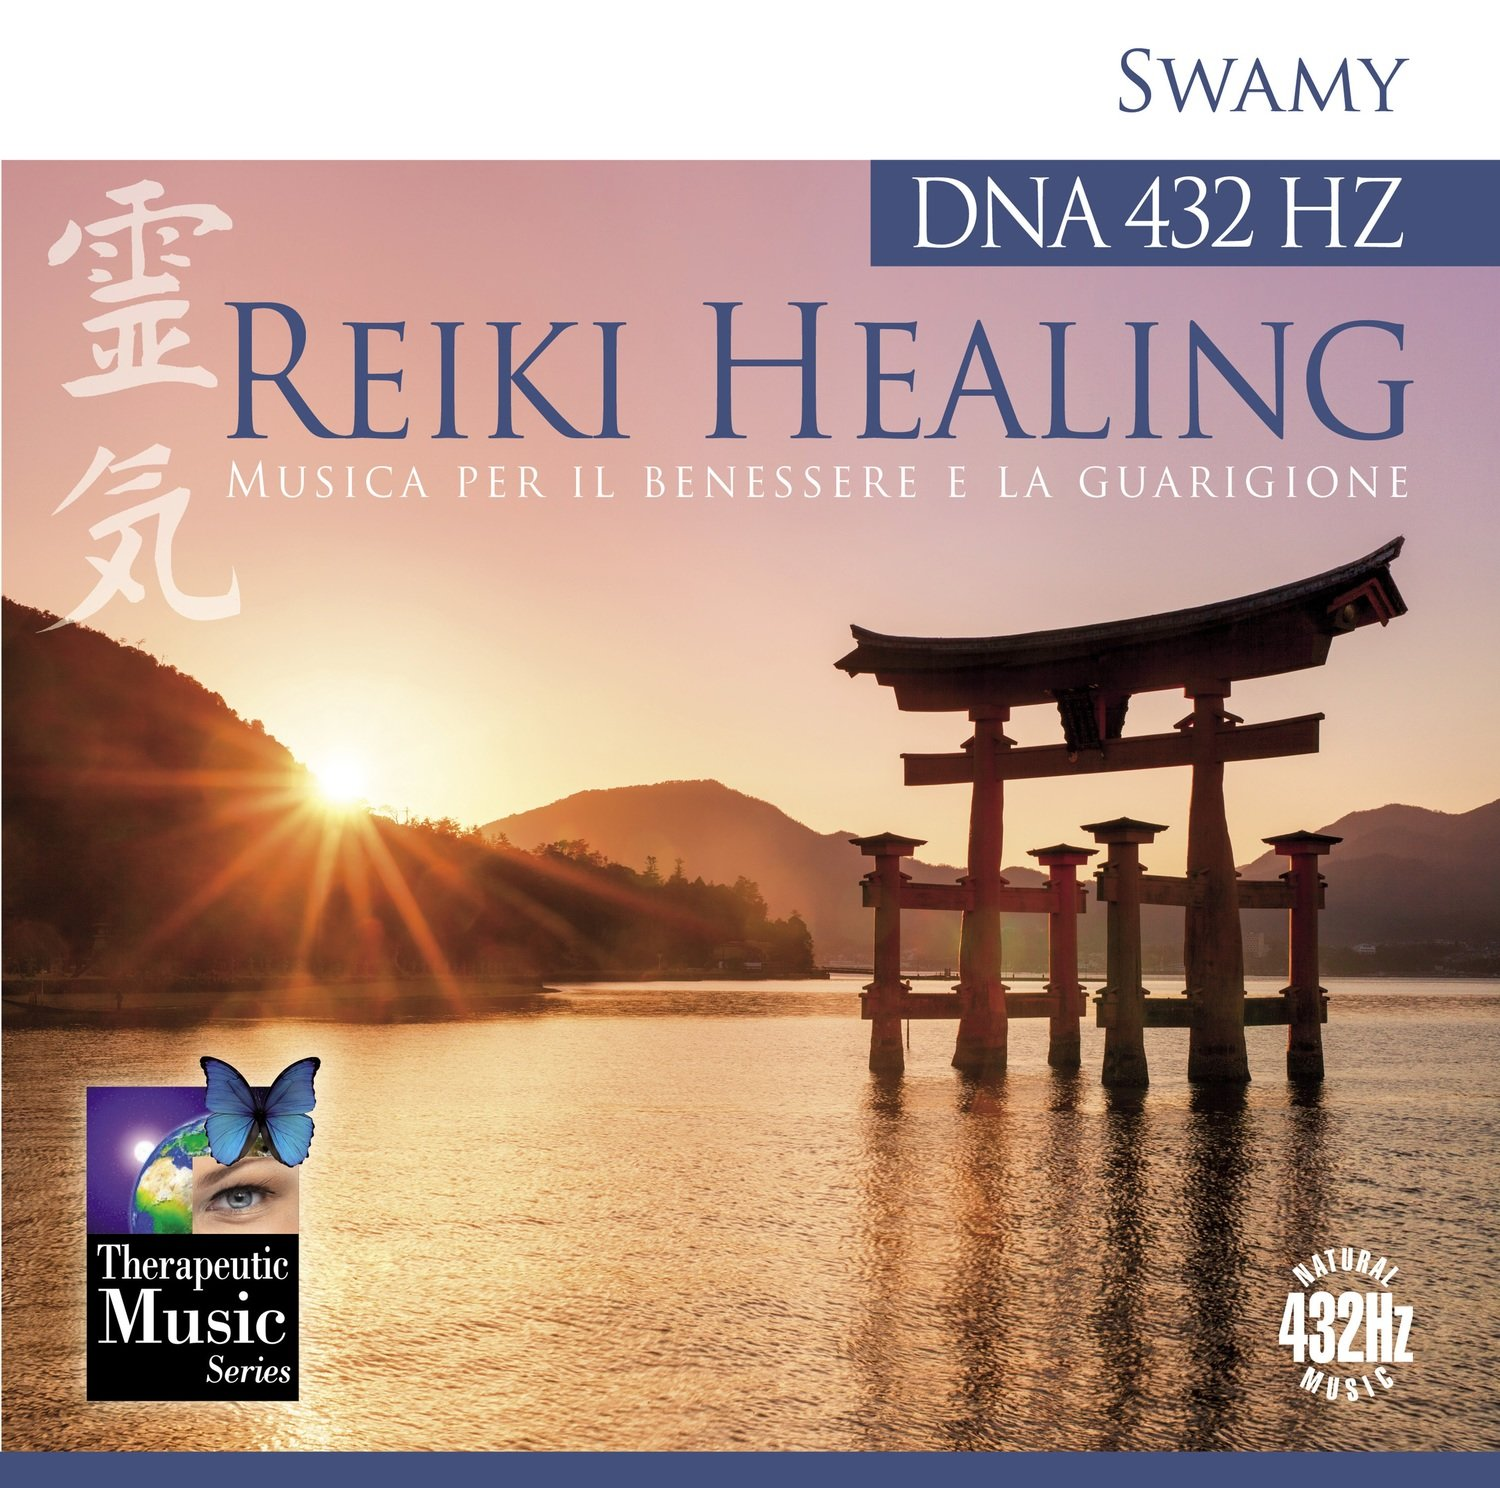 DNA 432 HZ REIKI HEALING